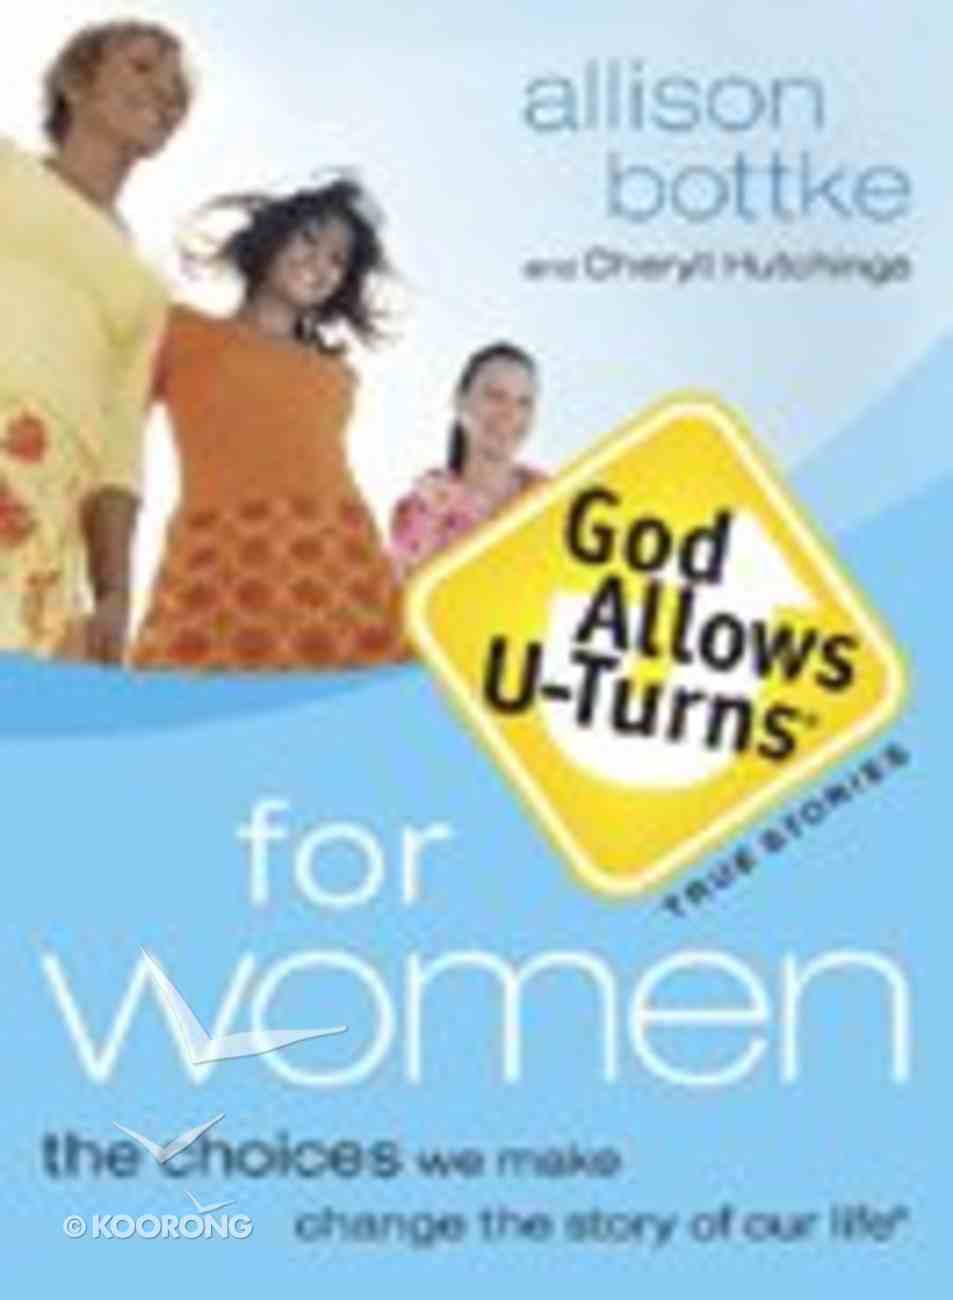 God Allows U-Turns For Women Paperback